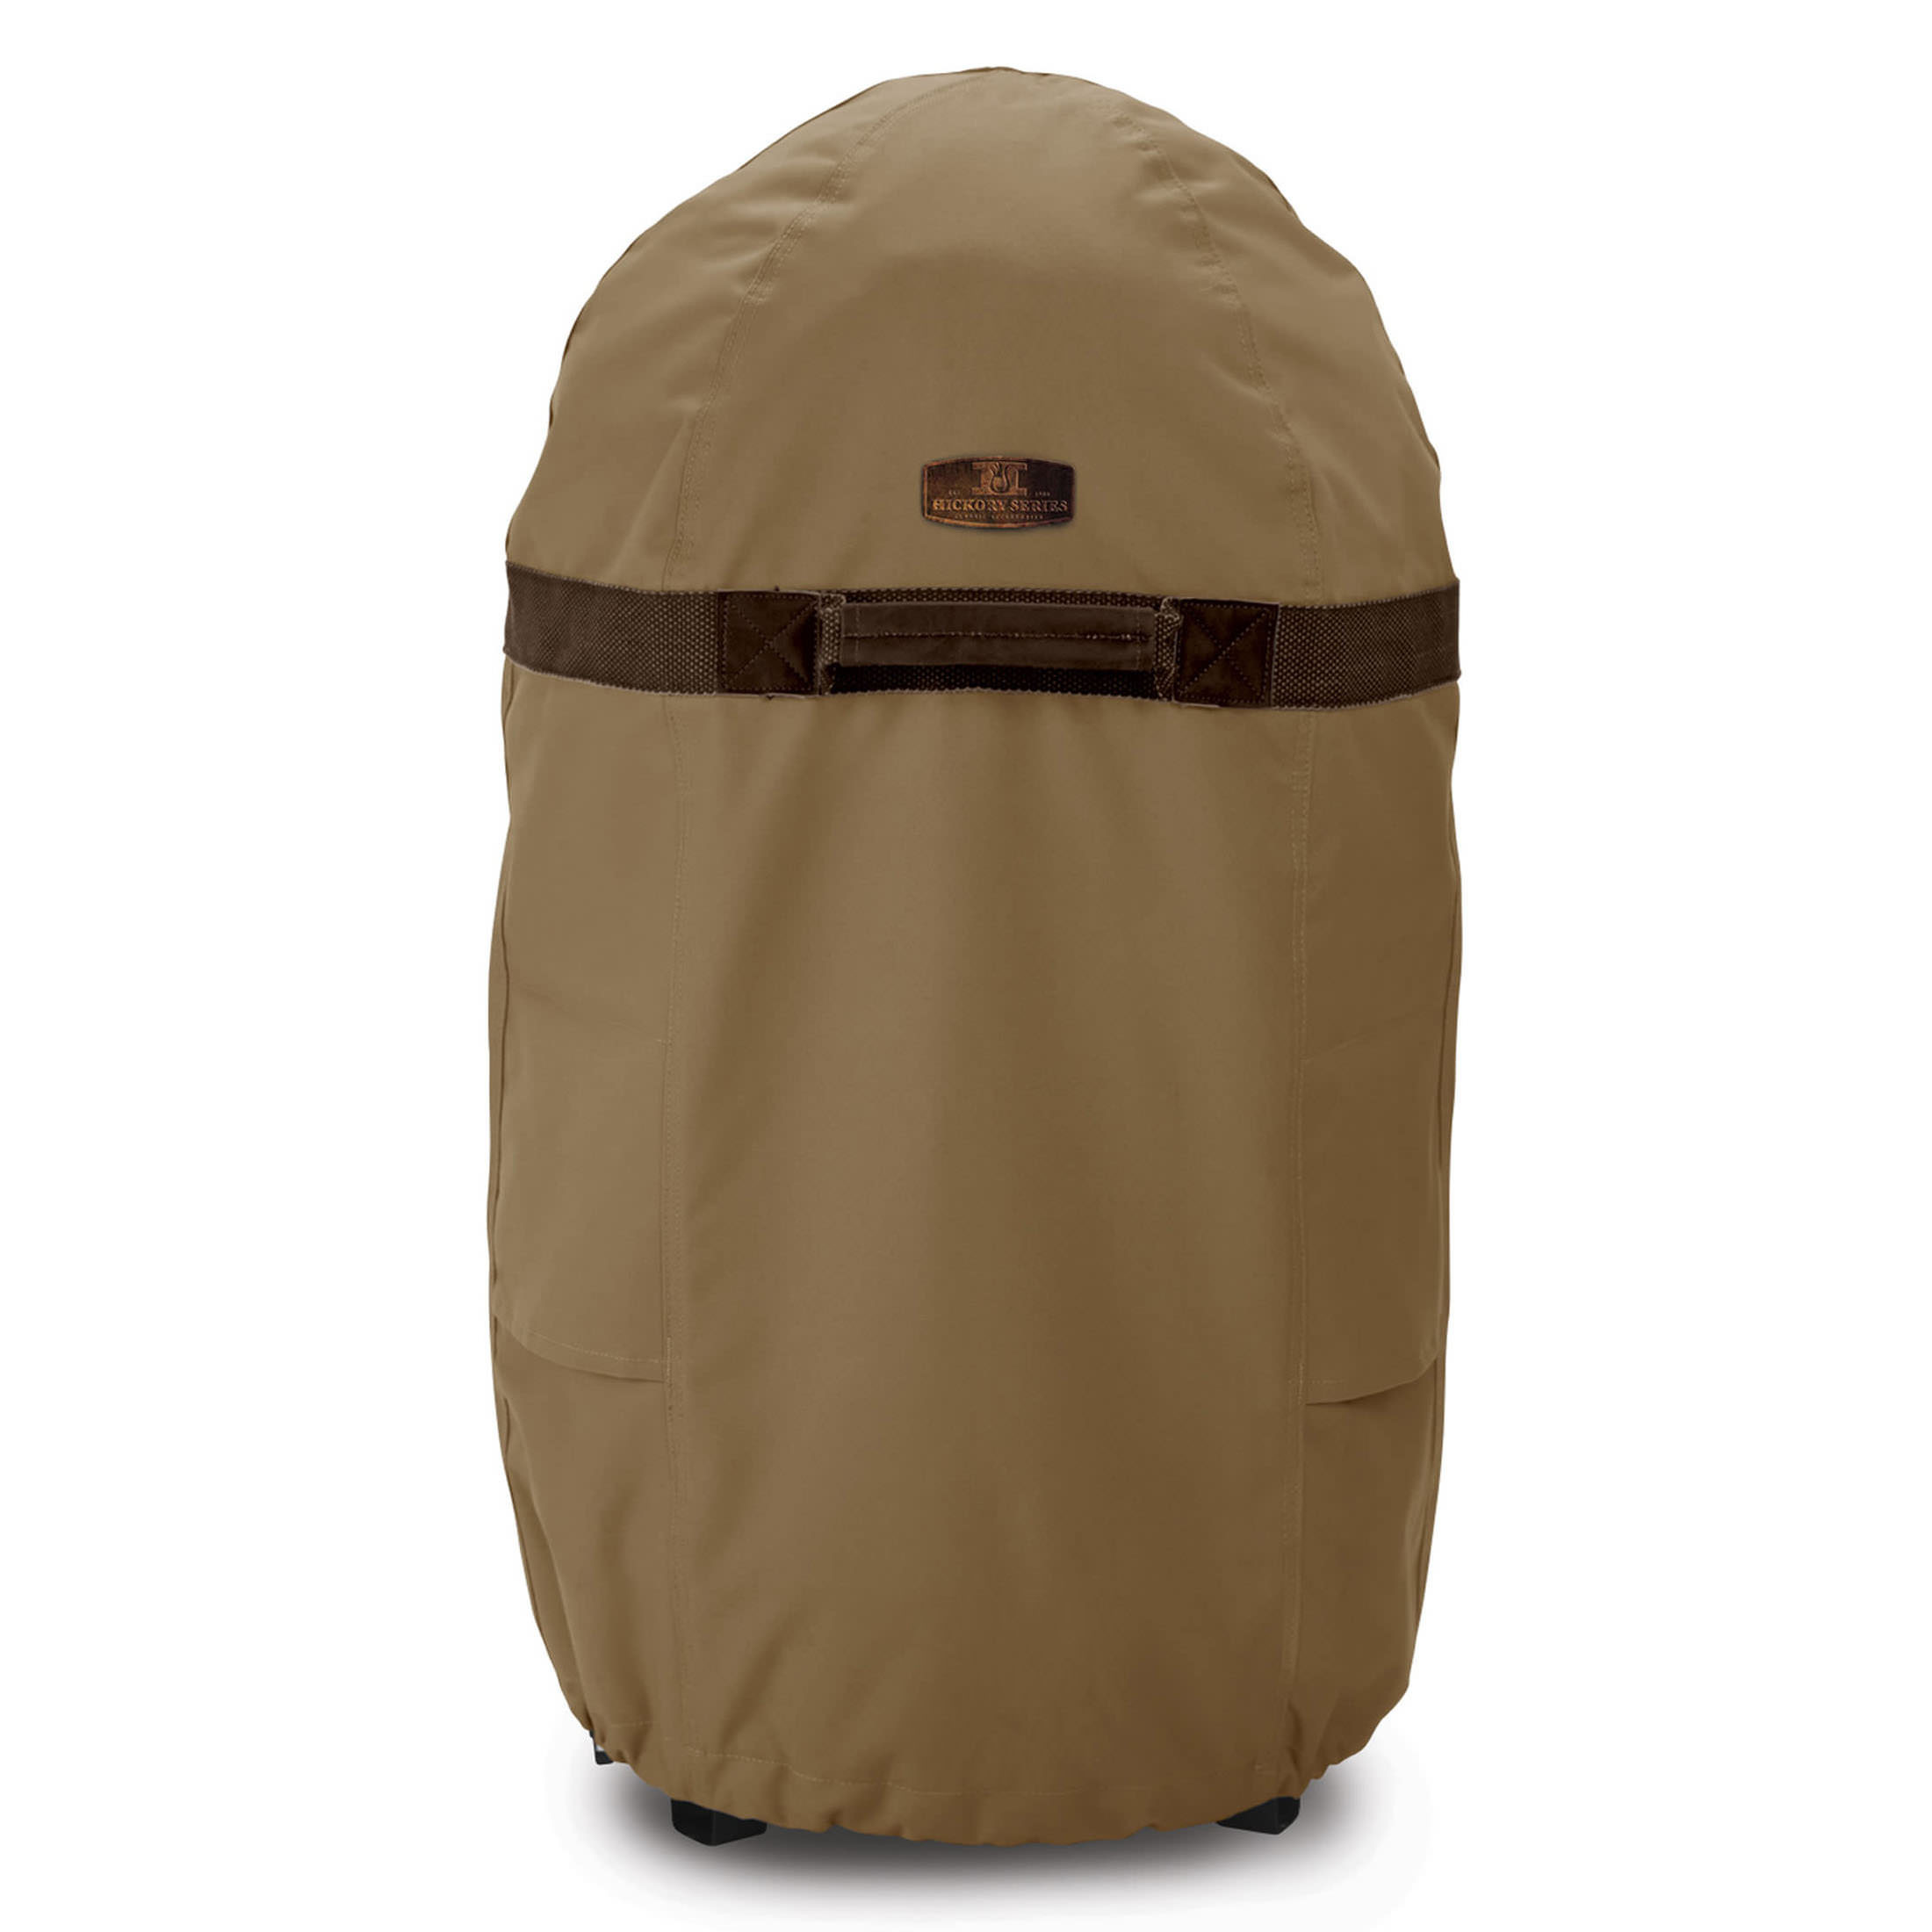 Classic Accessories Hickory Round Medium Tan Smoker Cover